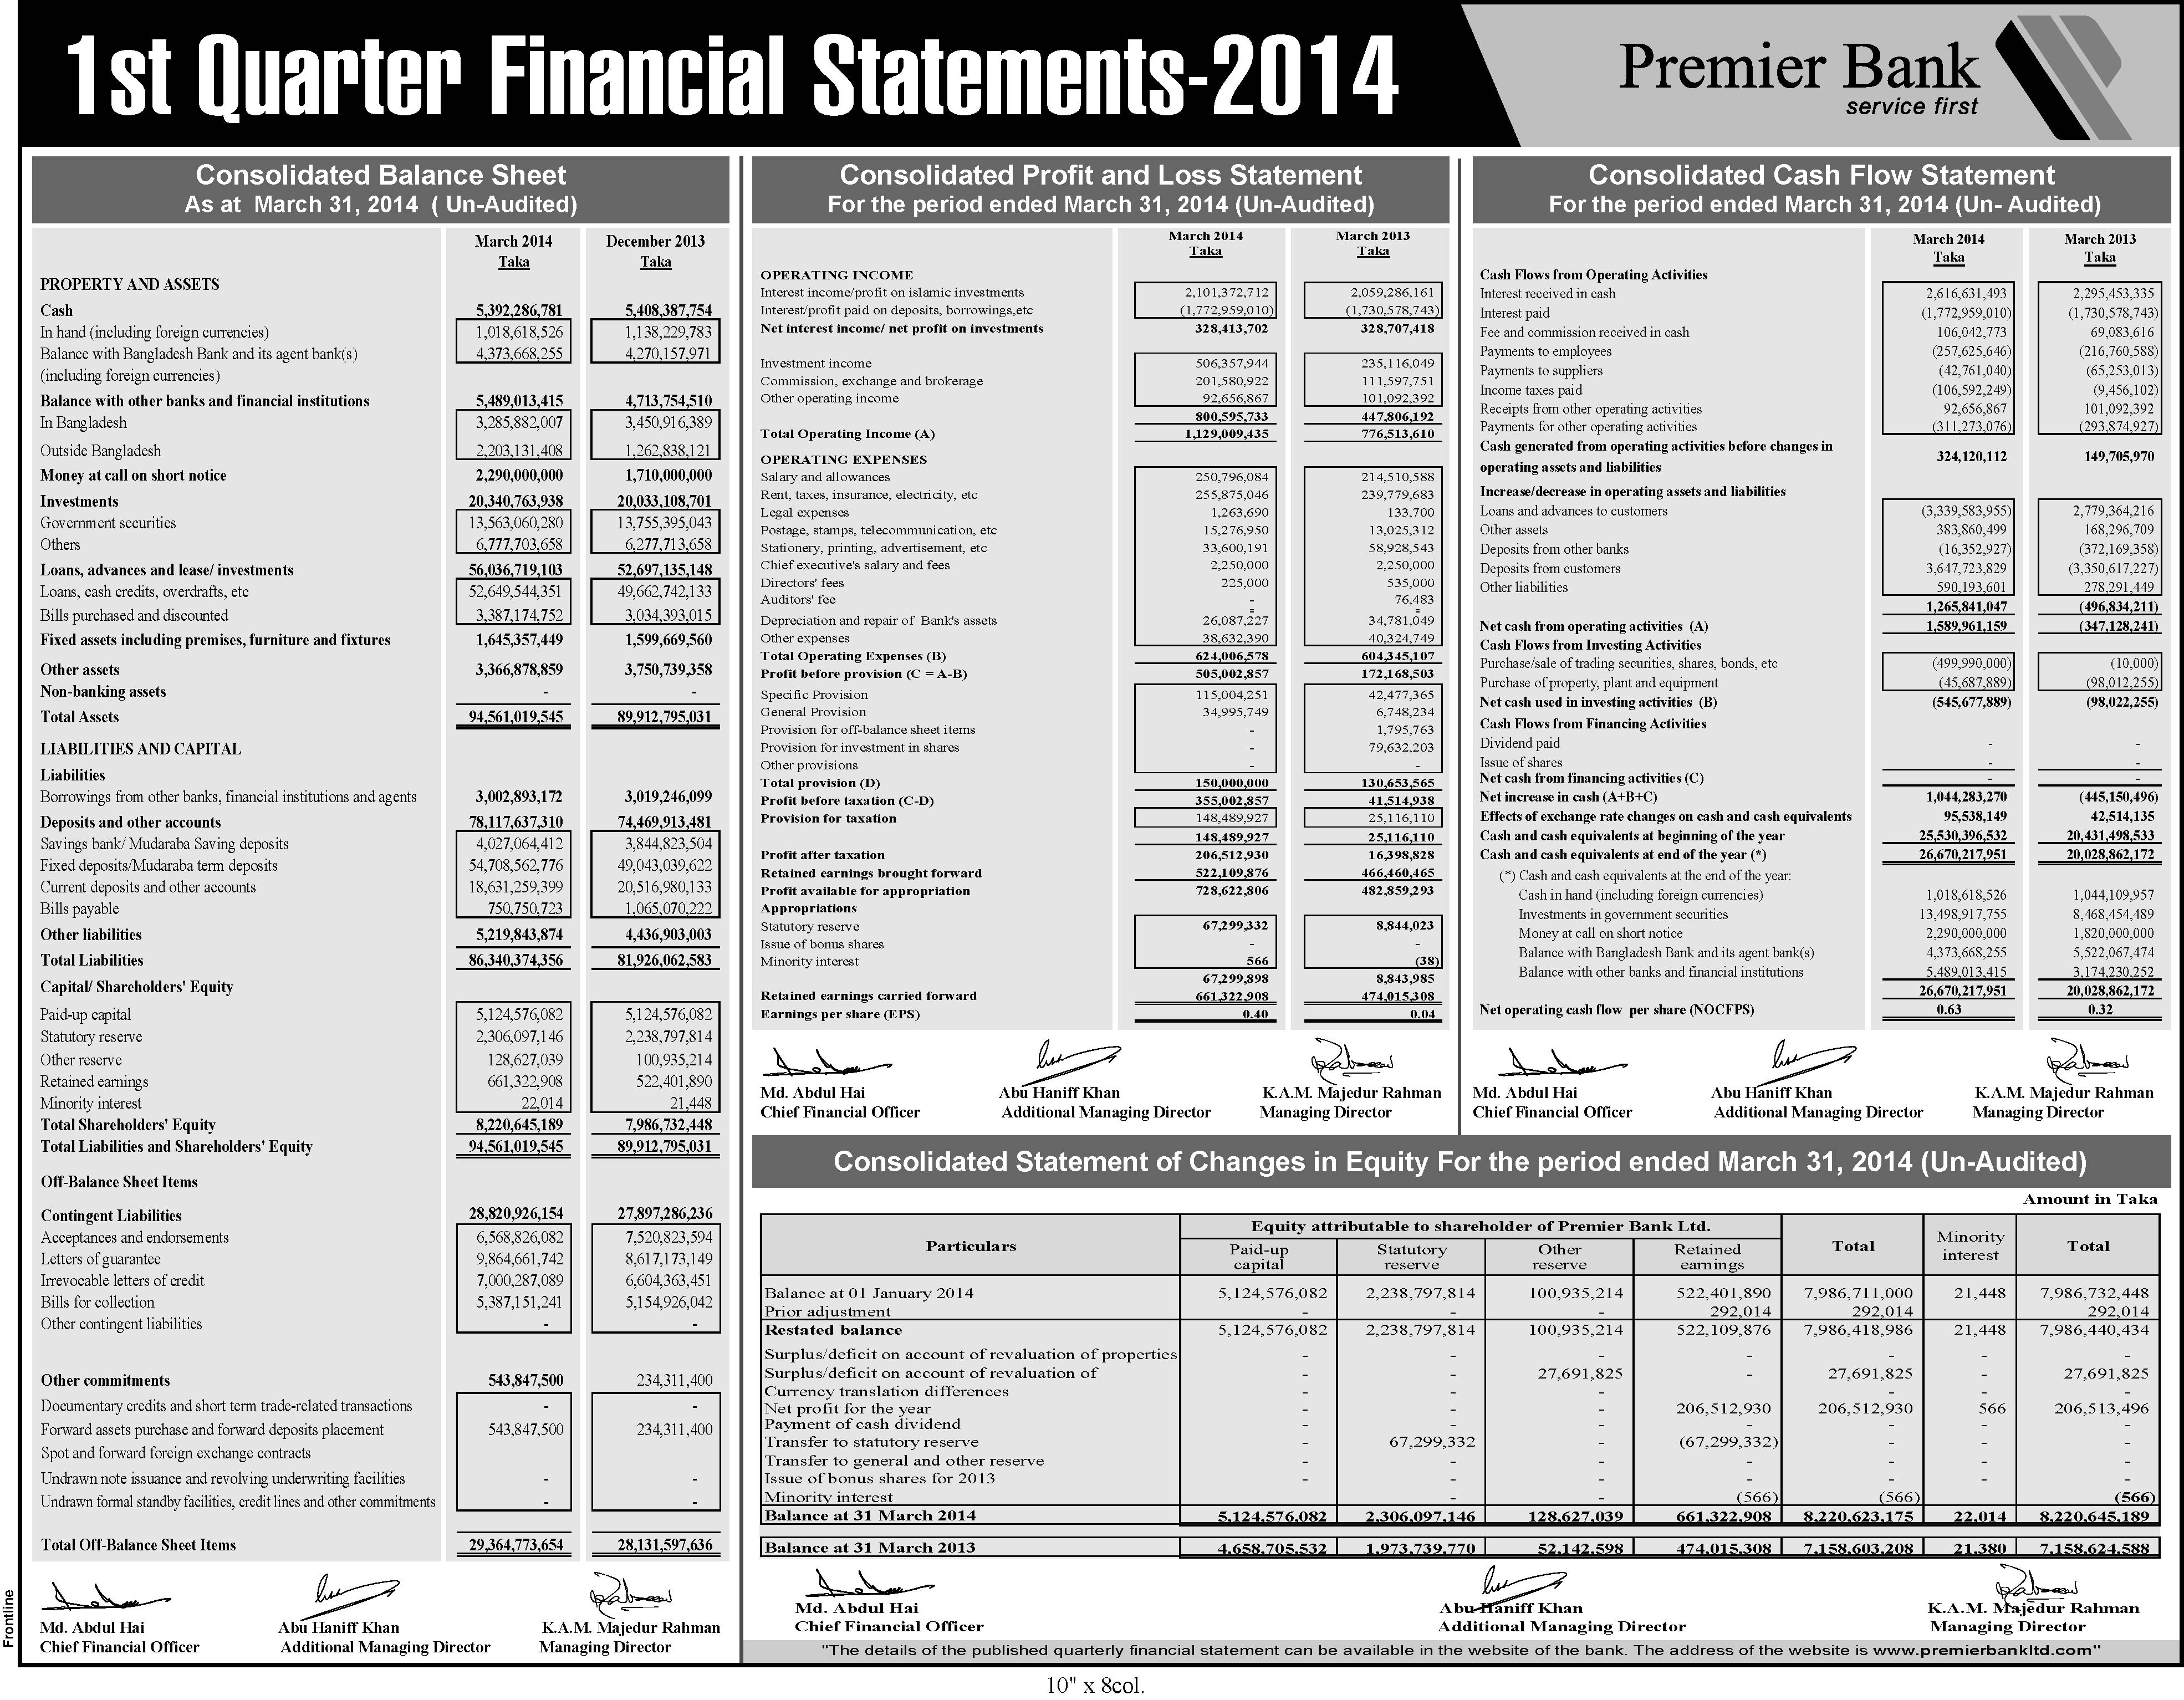 blance sheet analysis of carrefour Financial and strategic analysis: carrefour versus tesco 0 introduction in figure 3, the reformulated balance sheet for carrefour is presented.